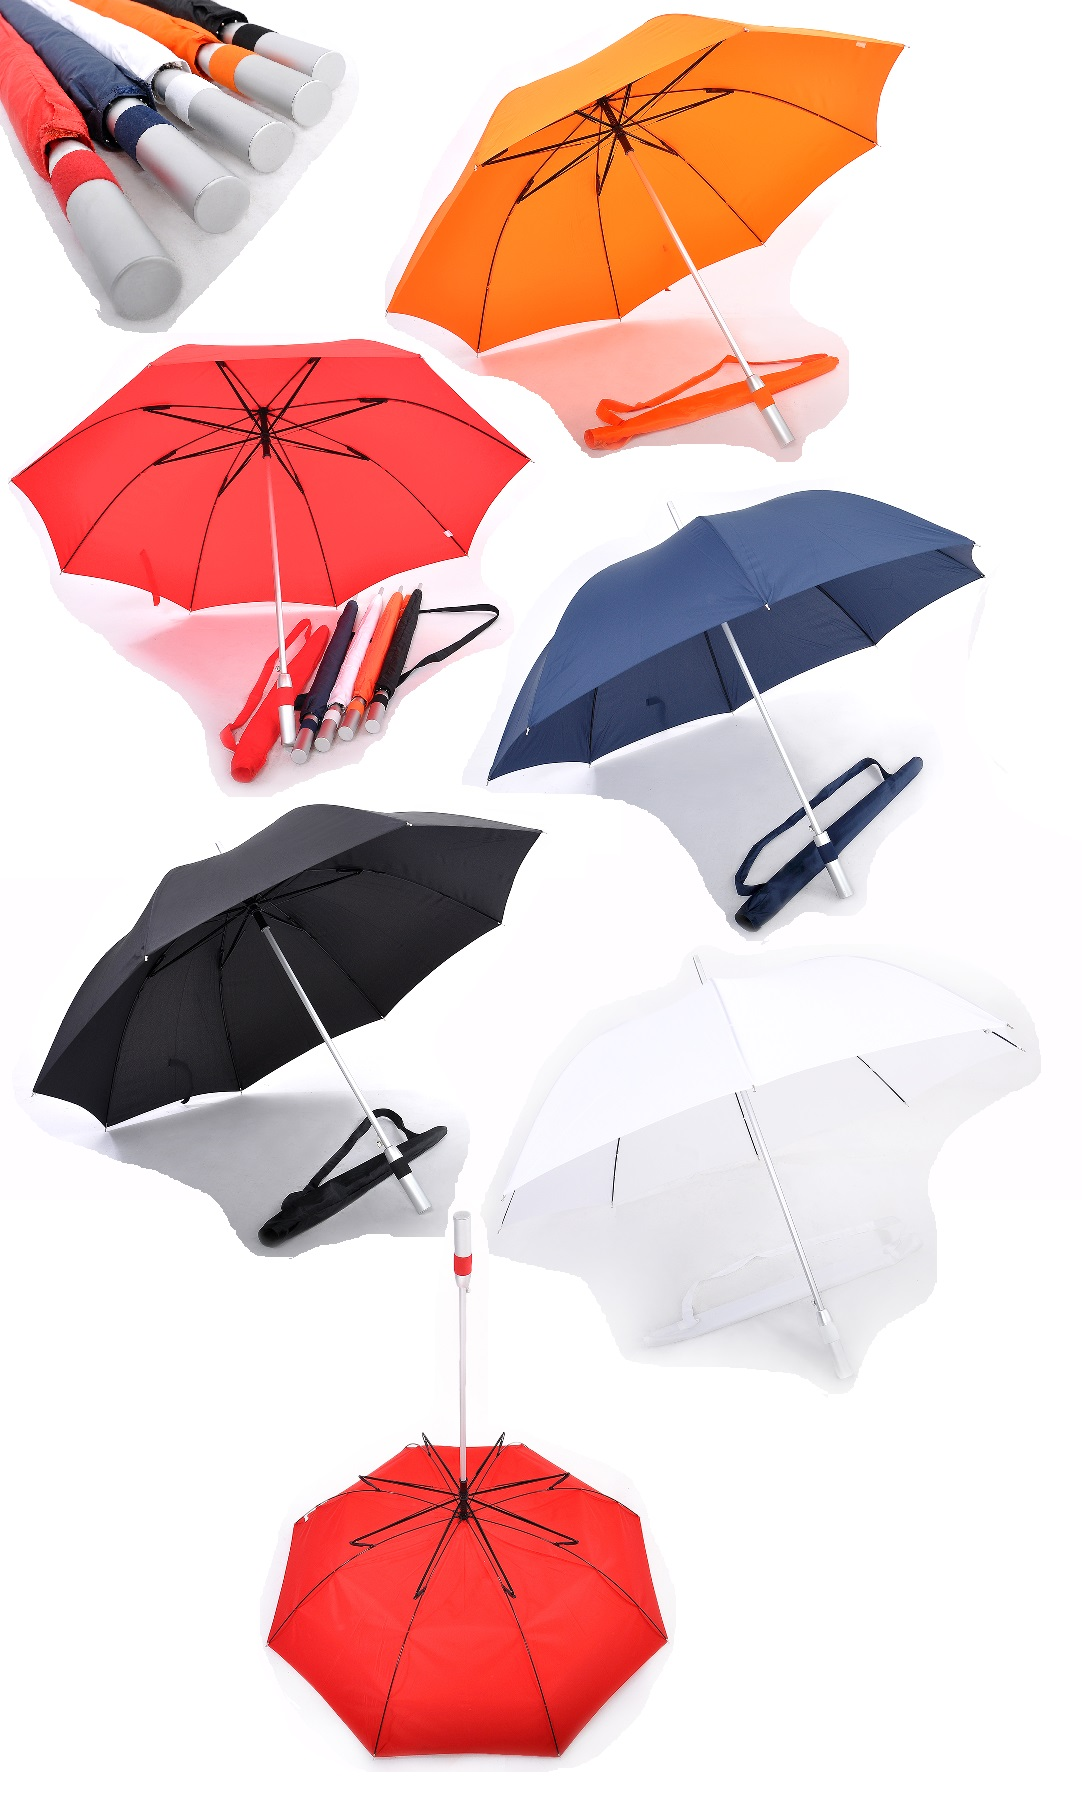 27inch Lightweight Umbrella without UV coating